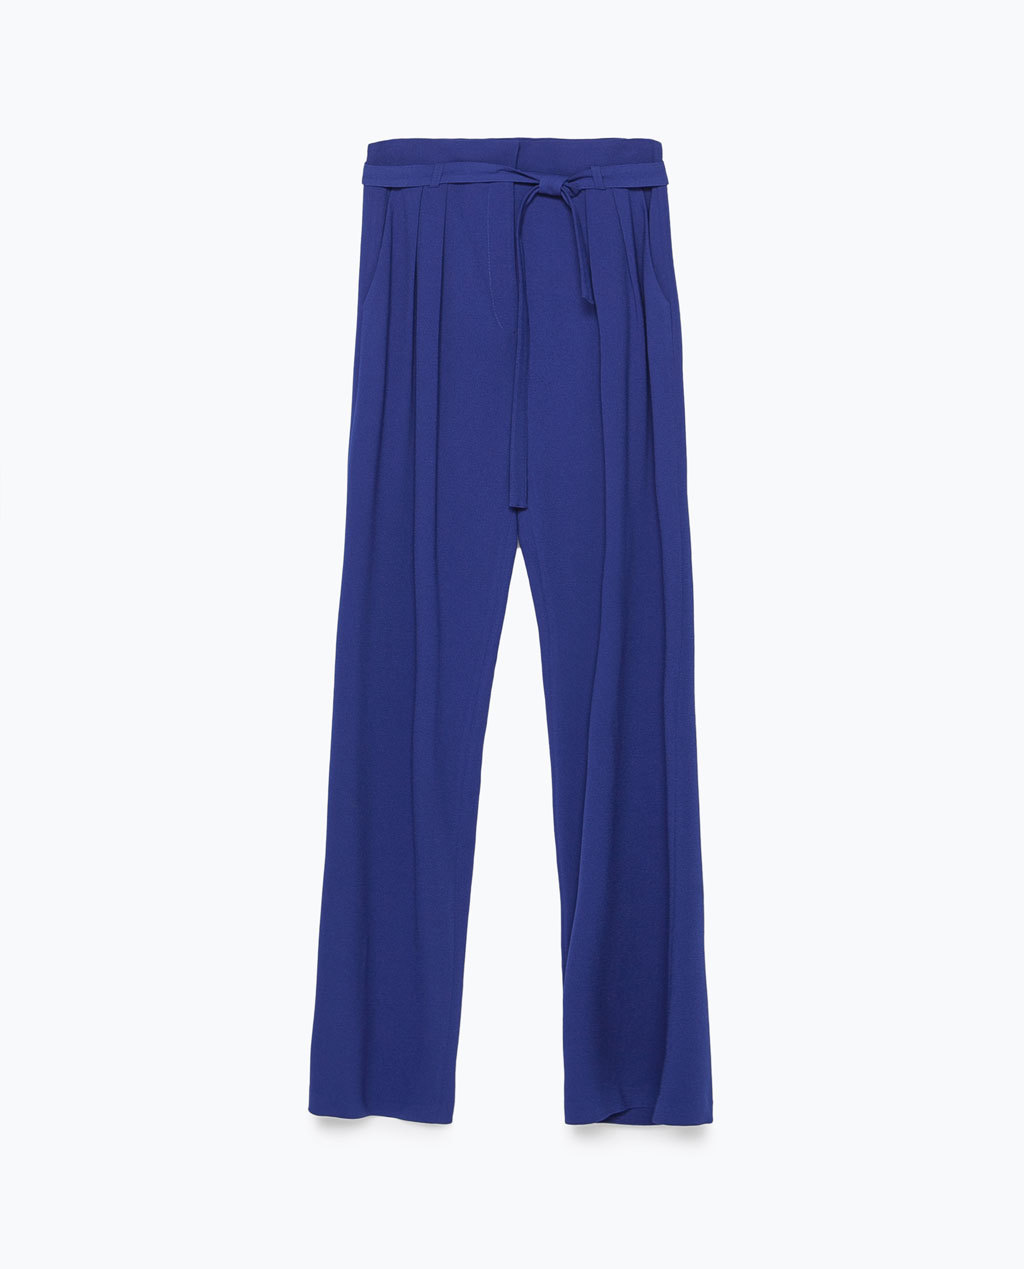 Loose Fit Trousers - length: standard; pattern: plain; style: palazzo; waist: mid/regular rise; predominant colour: royal blue; occasions: casual, creative work; texture group: crepes; fit: wide leg; pattern type: fabric; season: s/s 2015; wardrobe: highlight